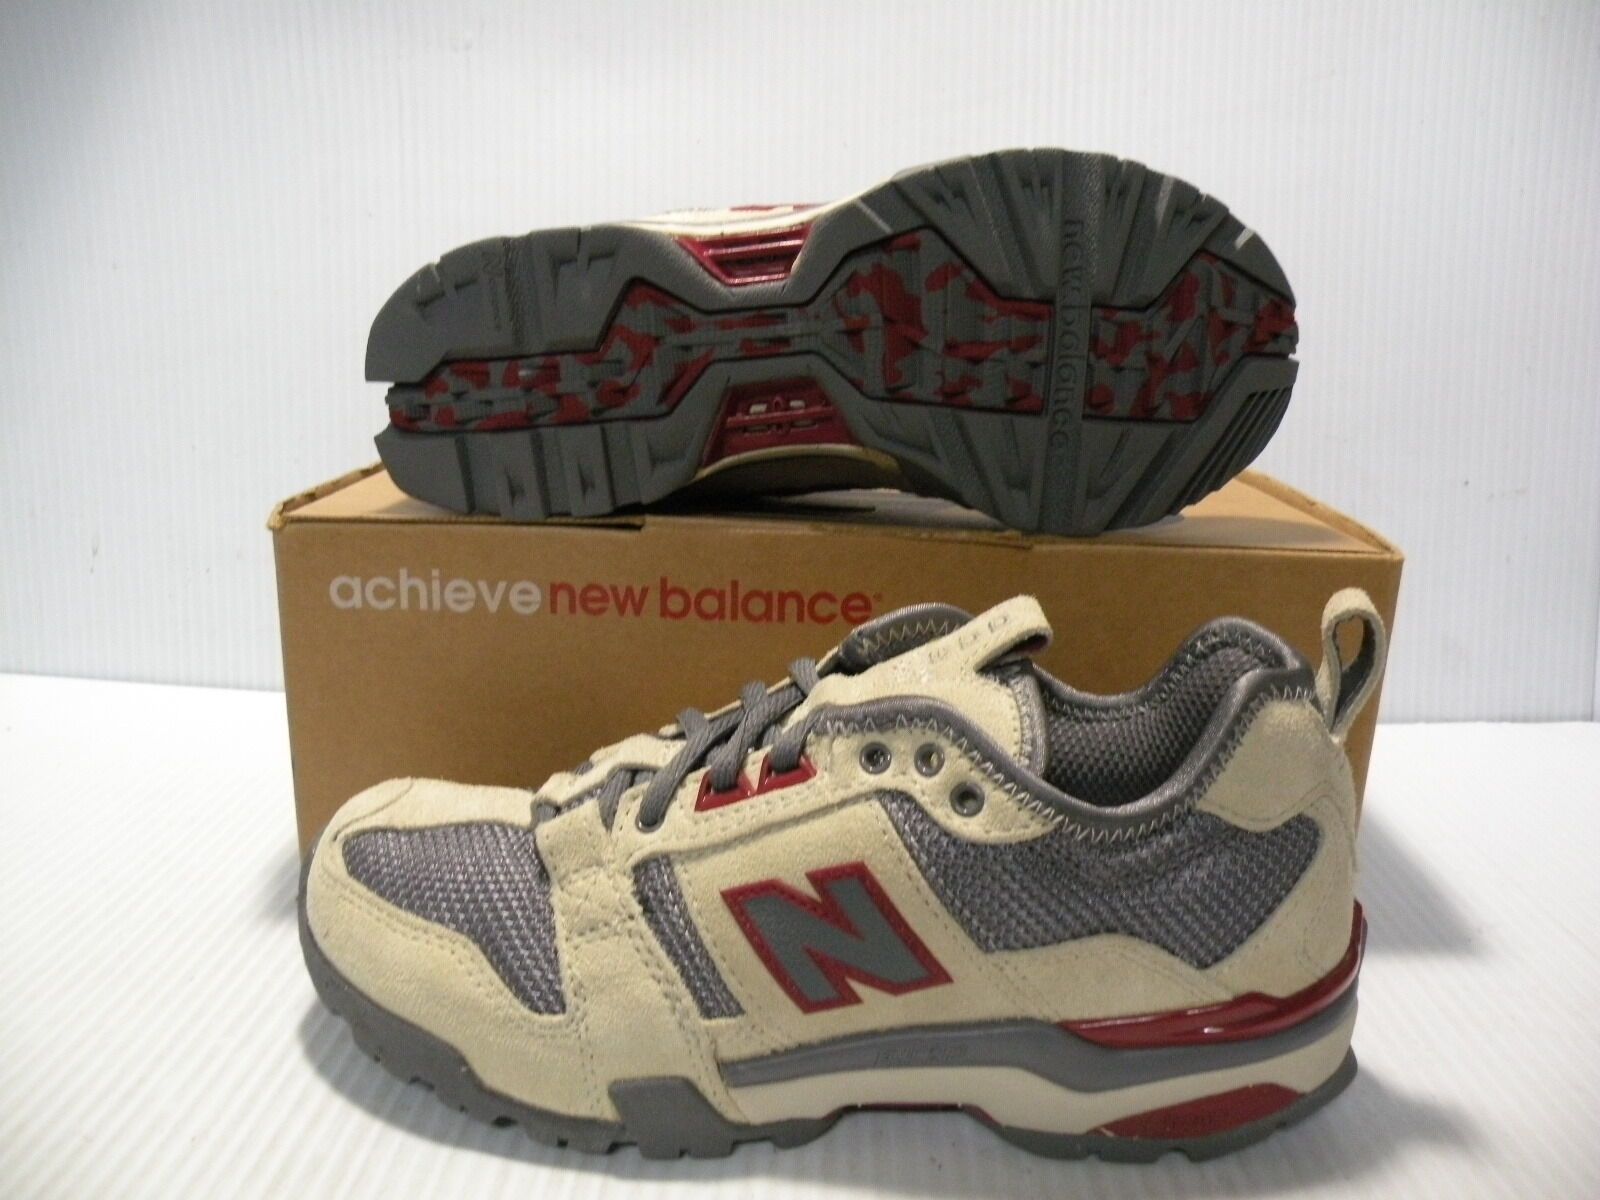 NEW BALANCE 008 LOW LOW LOW SNEAKERS WOMEN SHOES GREY 008GR SIZE 6 NEW 20e8d0